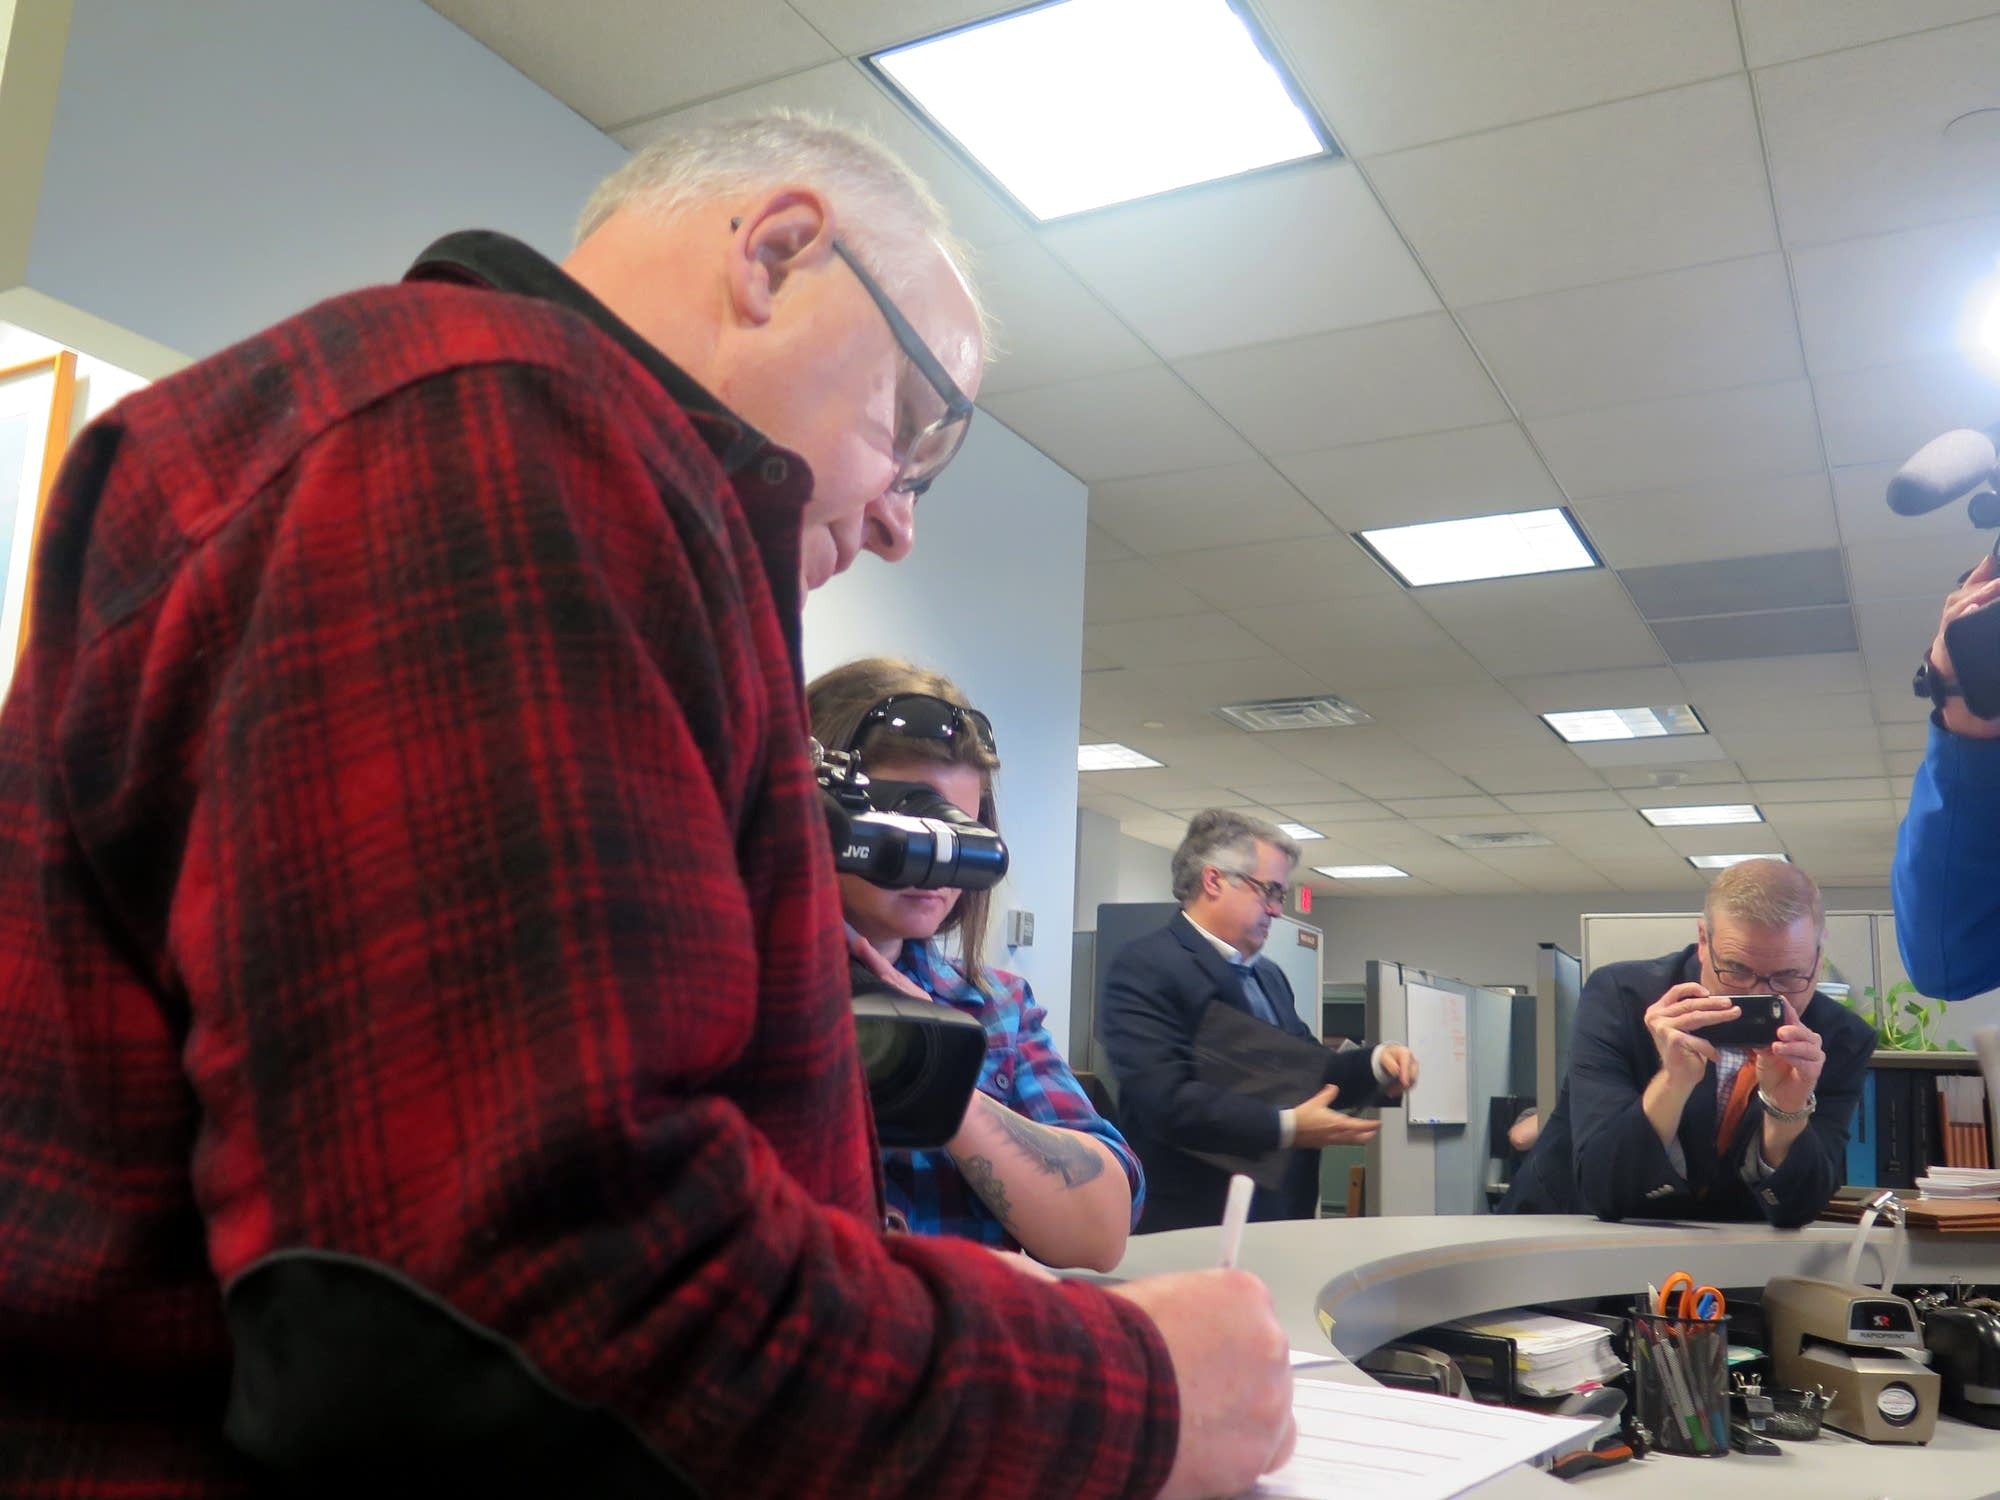 Tim Walz signs paperwork creating a campaign account for governor